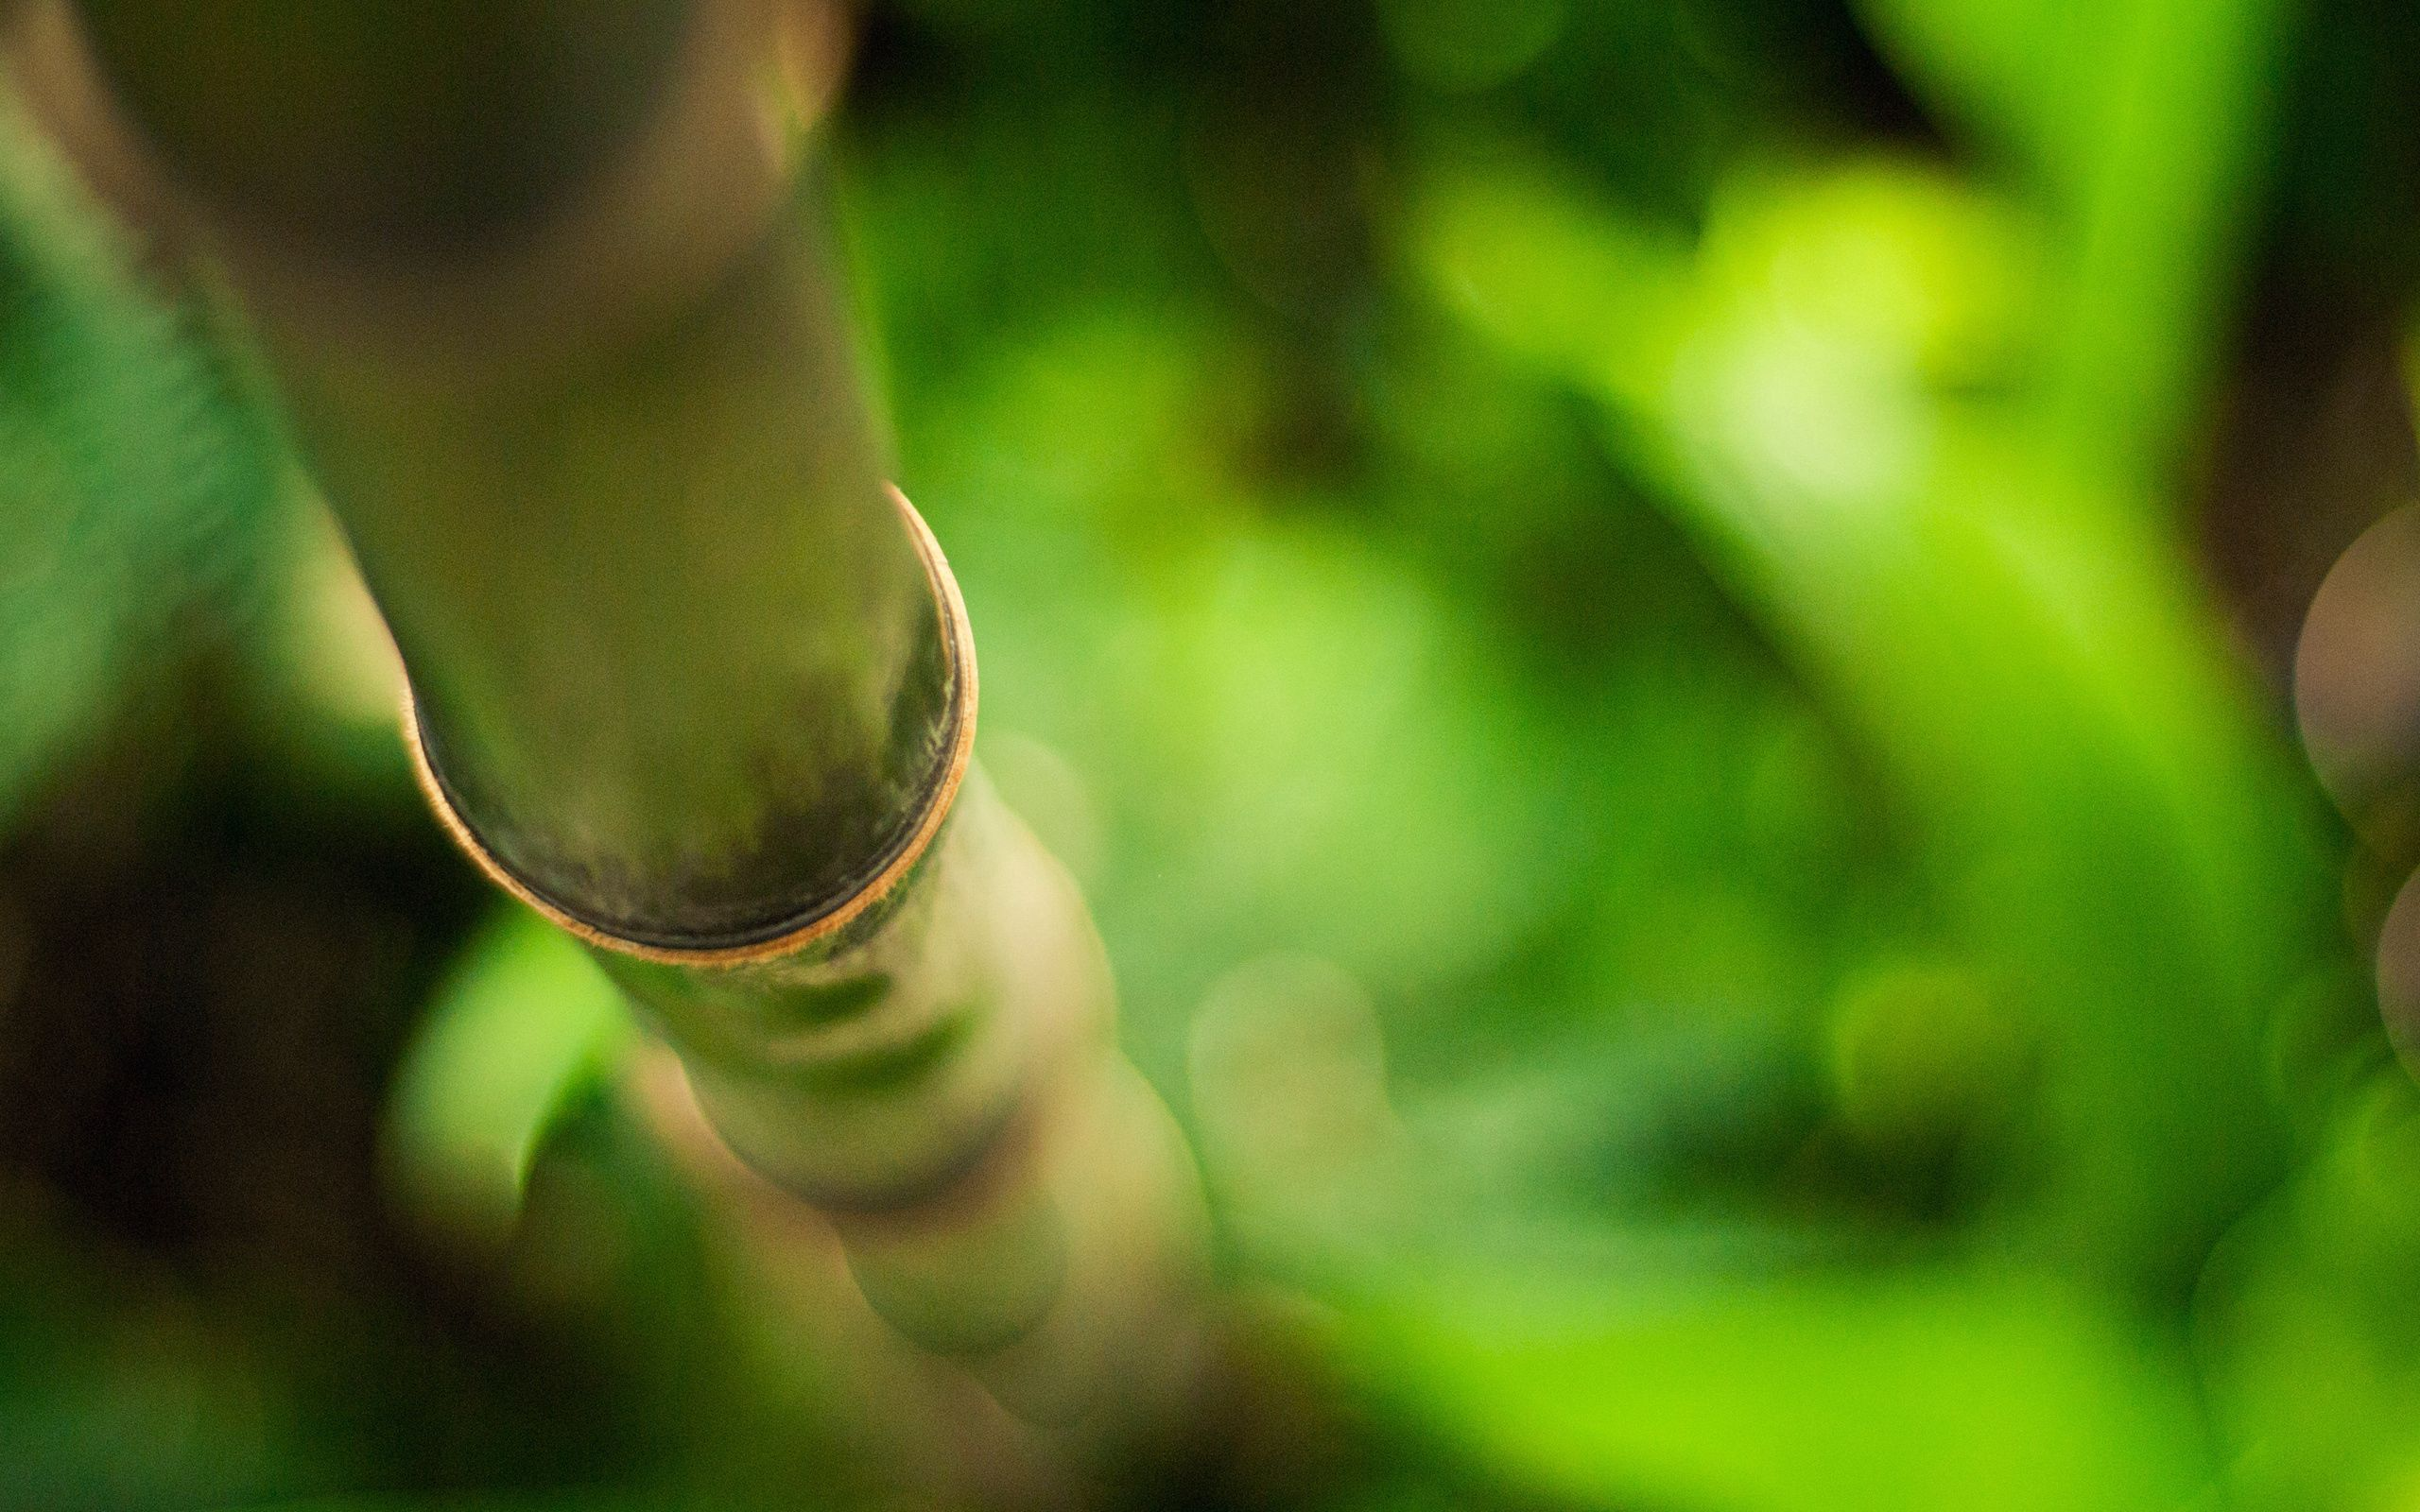 80936 download wallpaper Macro, Stem, Stalk, Bamboo, Branch, Glare screensavers and pictures for free